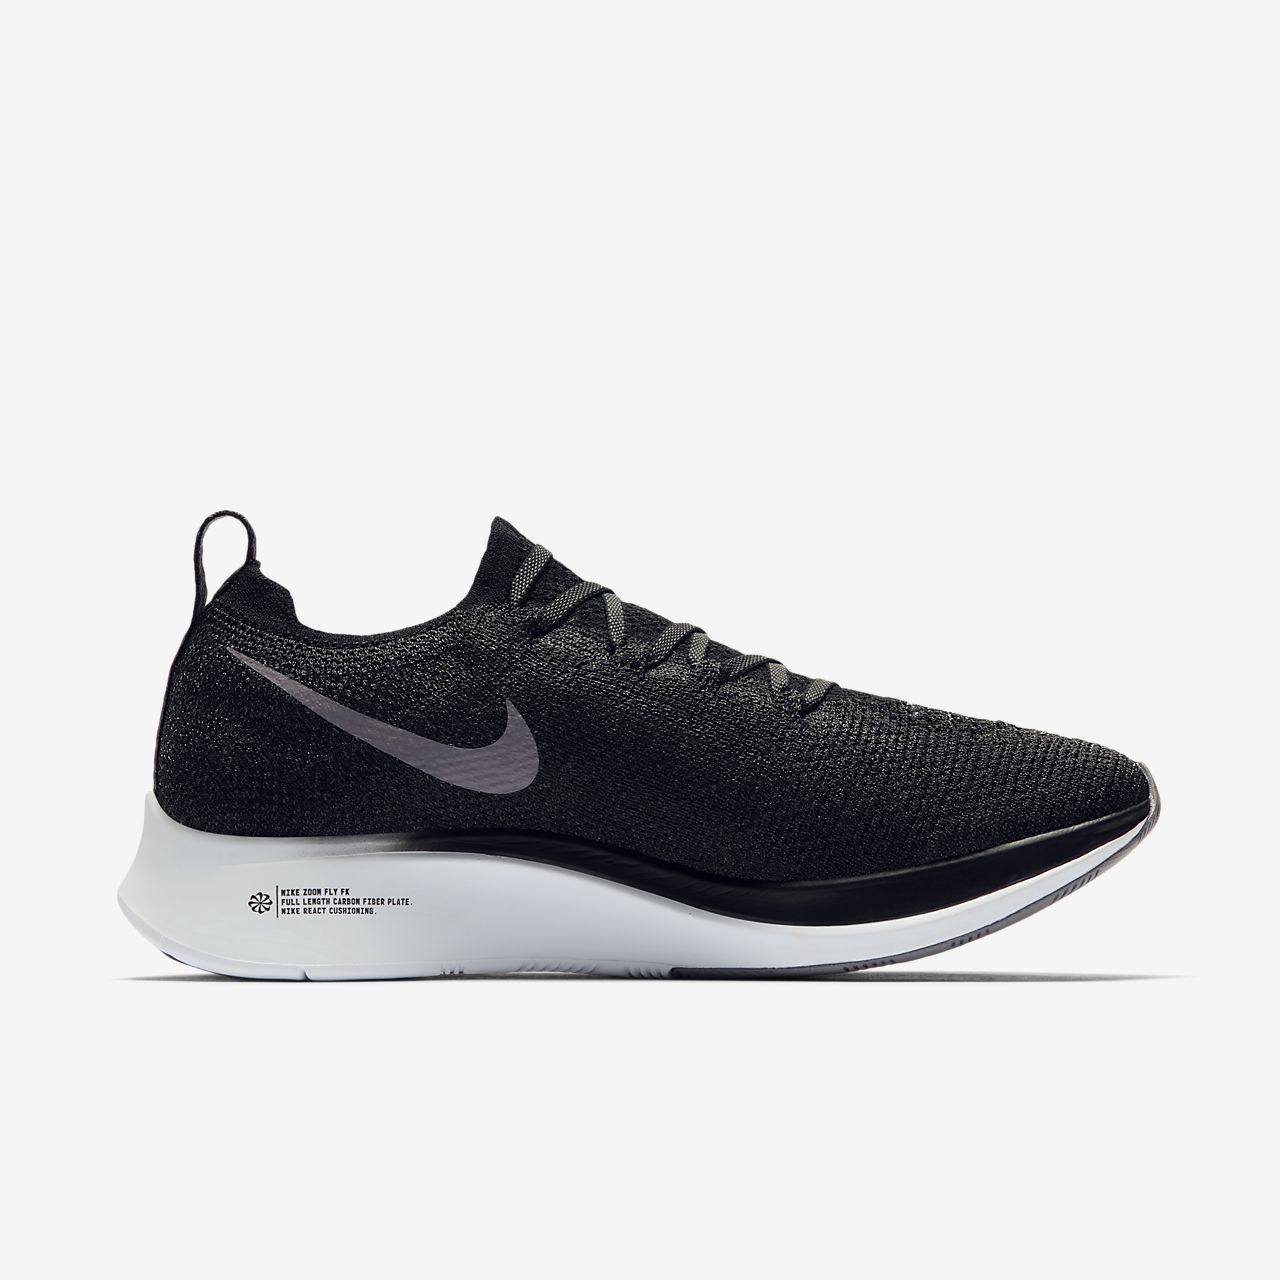 af70b14f02349 Nike Zoom Fly Flyknit Women s Running Shoe. Nike.com GB